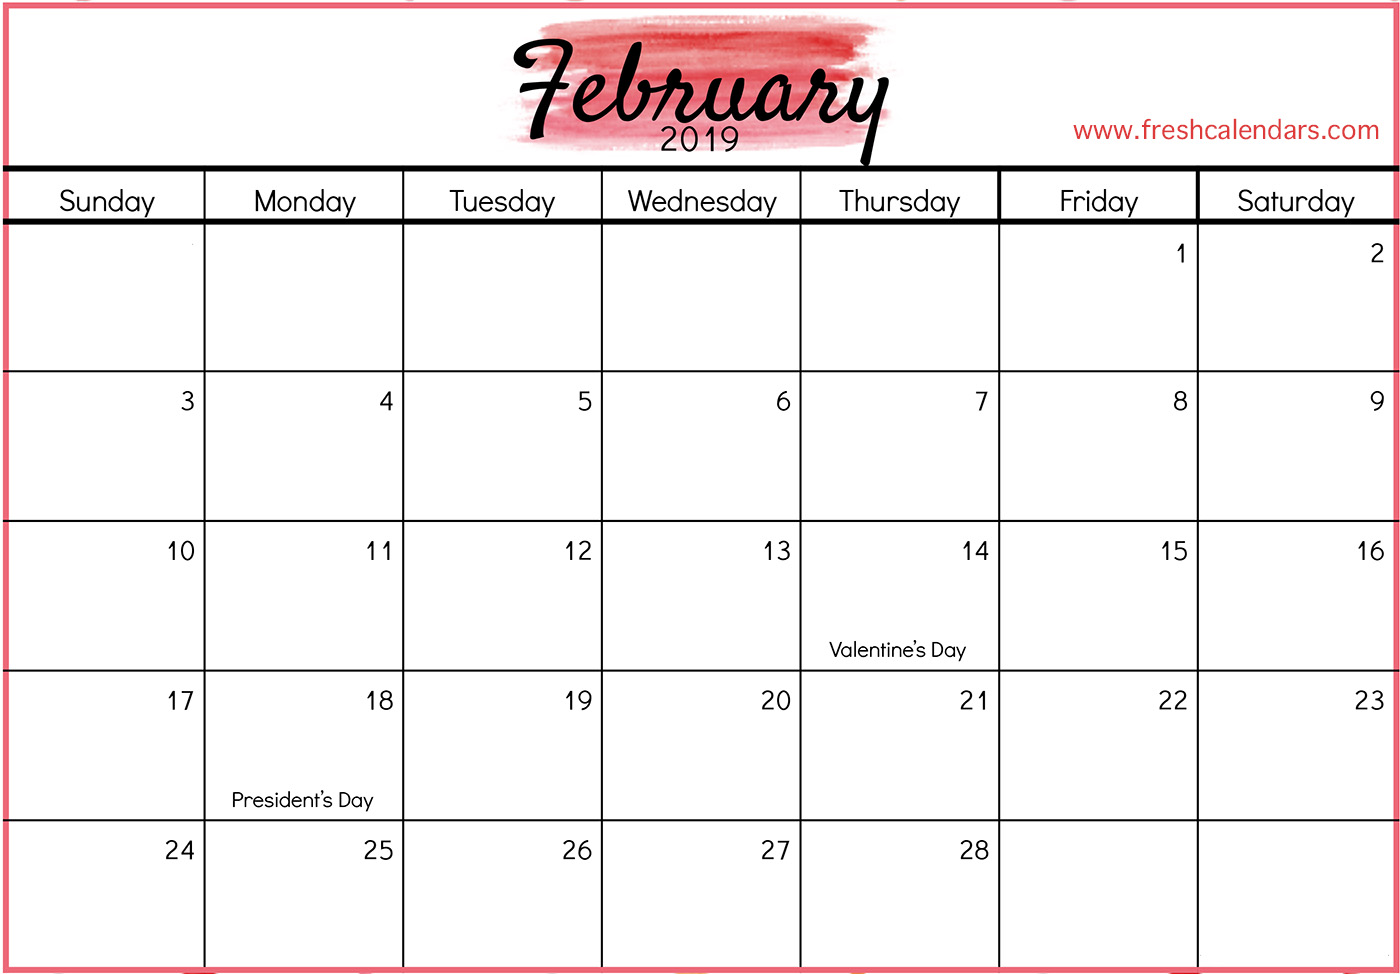 Monthly Calendar February 2019 With Holidays